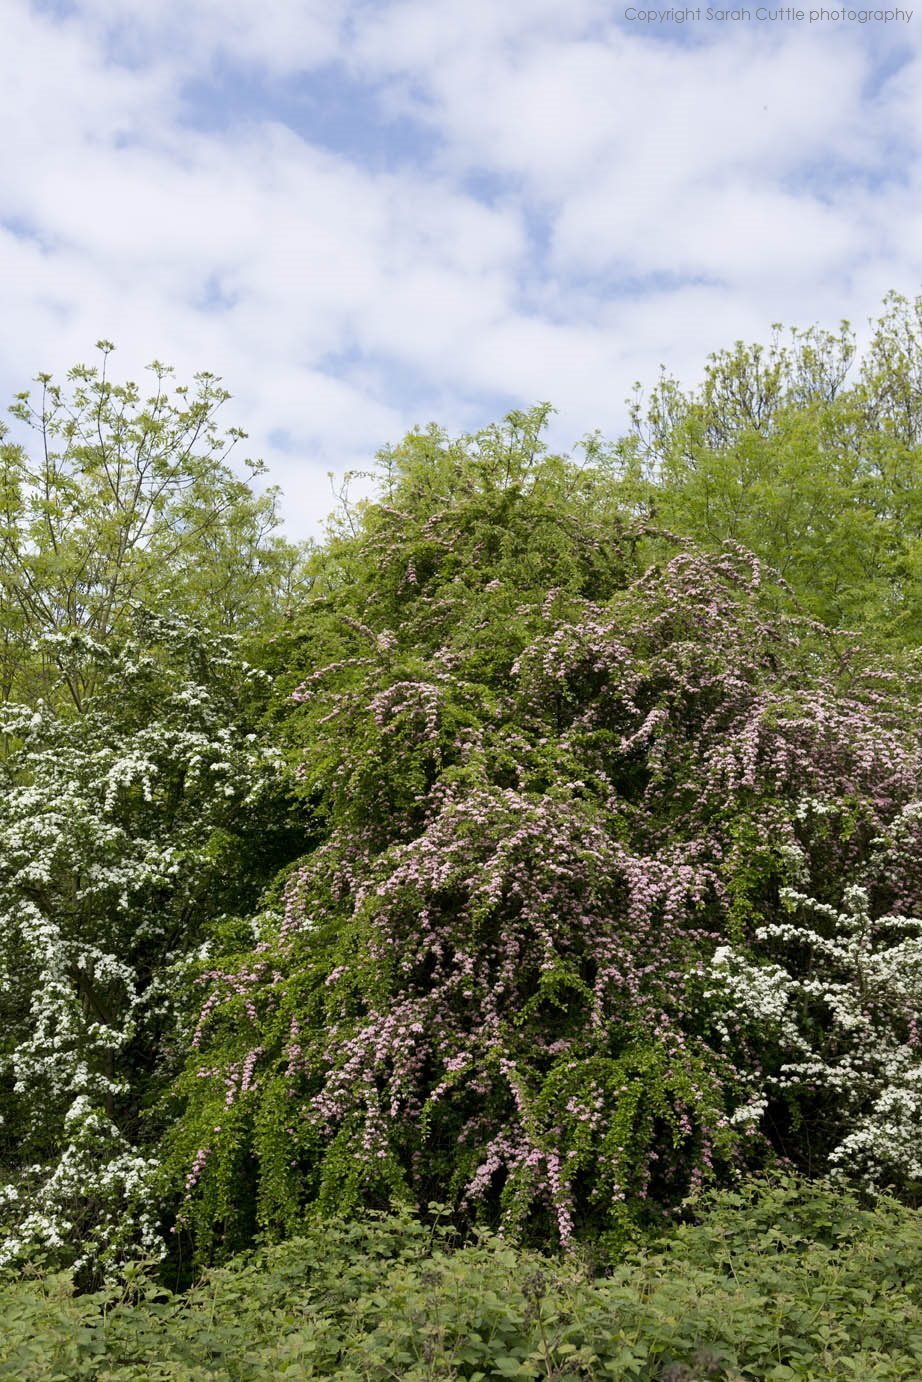 The hawthorn form shows waterfall-like arms of foliage.